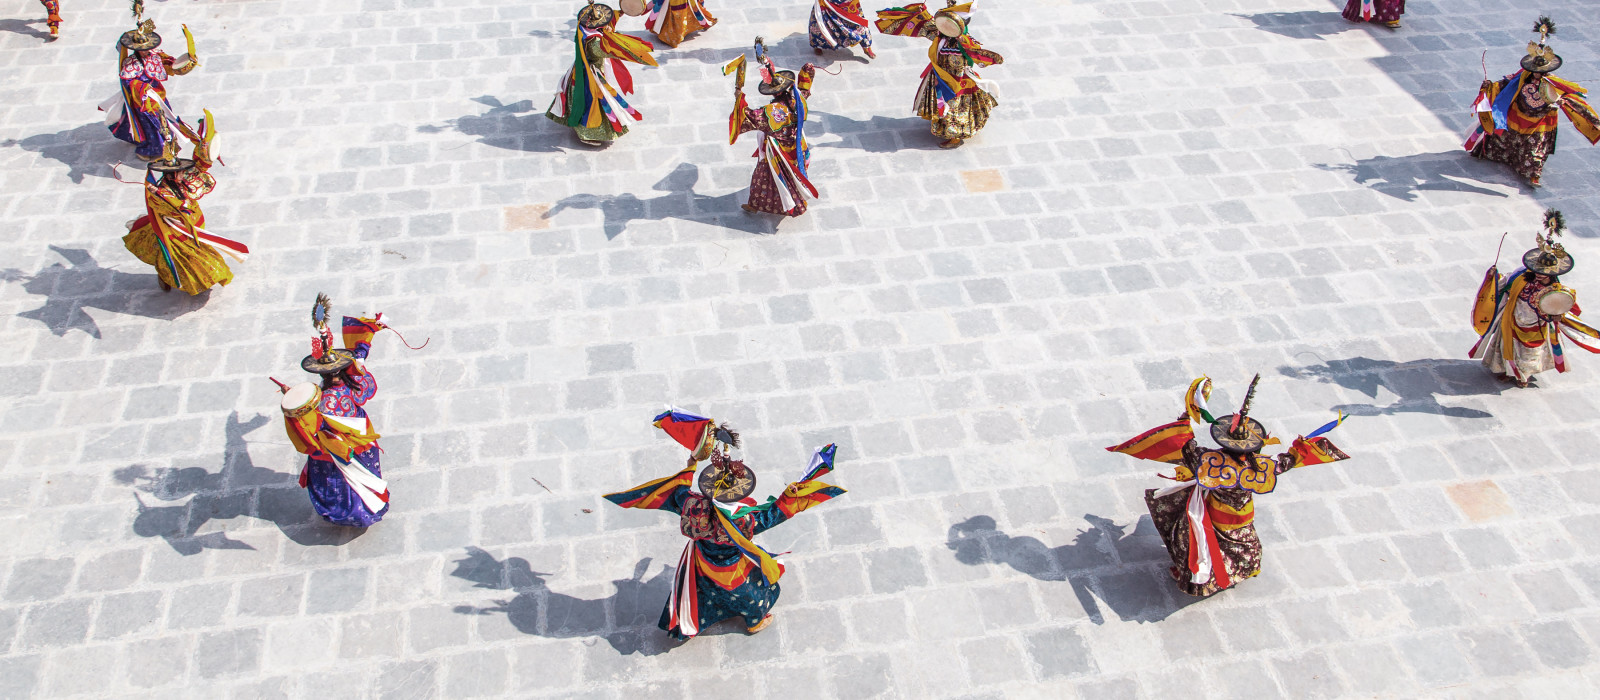 Traditional dance and colors in Mongar, Bhutan, Asia